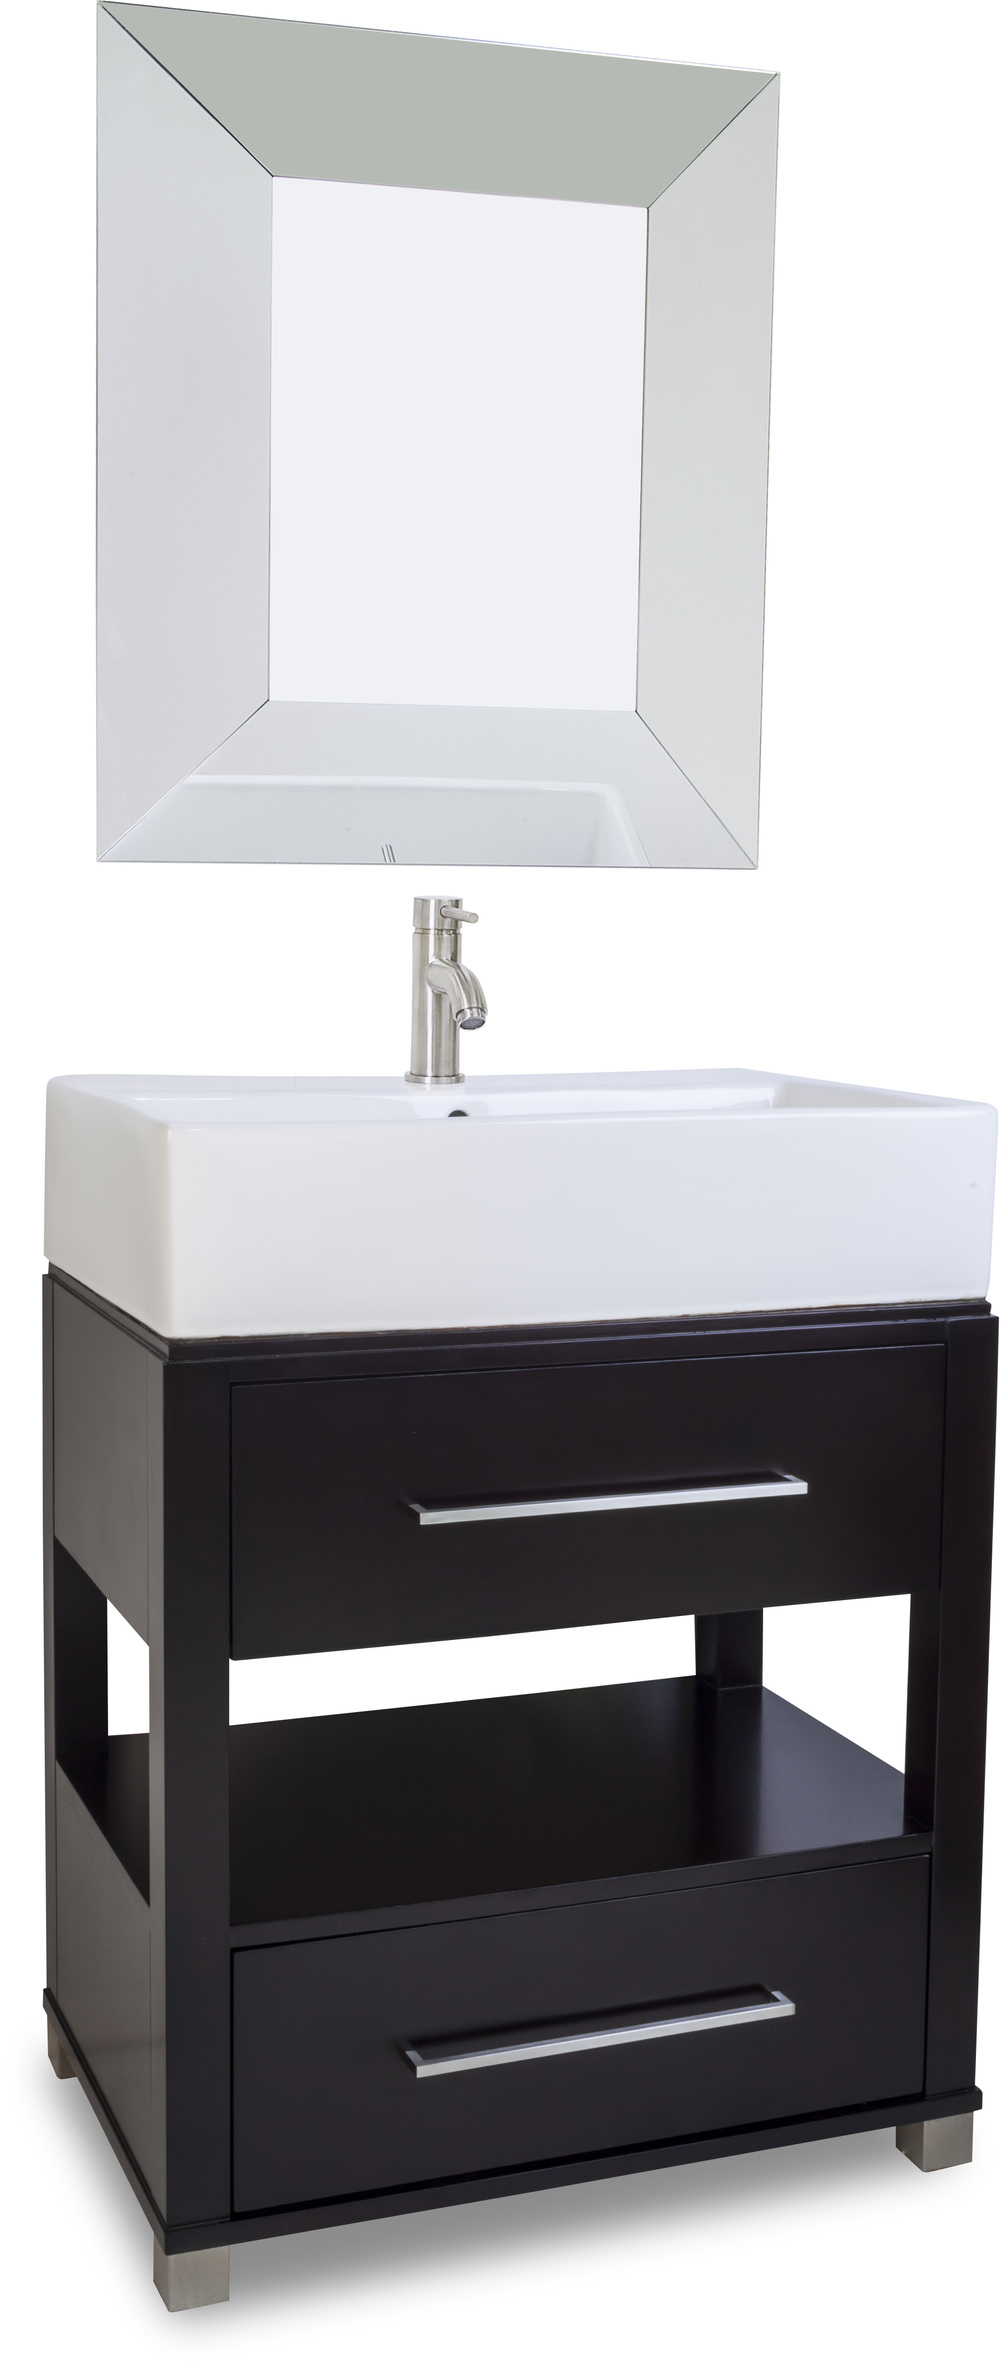 Wells Vessel Sink & Vanity, Courtesy Hardware Resources